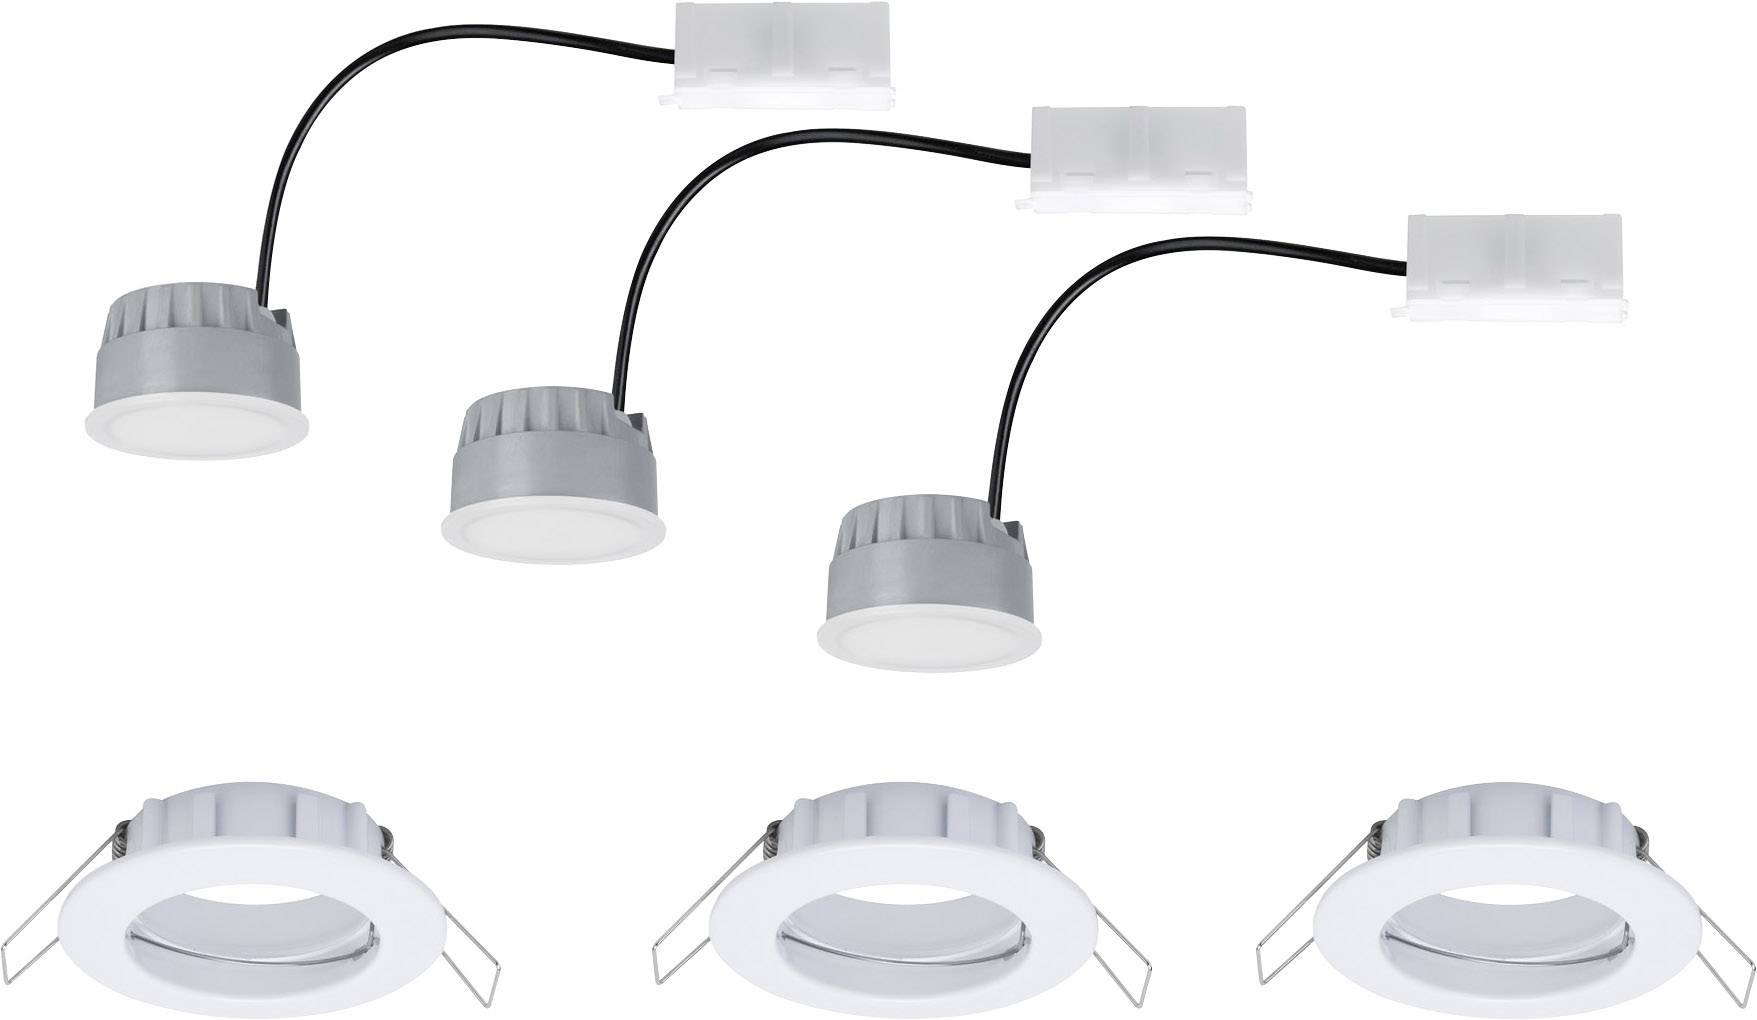 LED-badkamer inbouwlamp 21 W 230 V Warm-wit Paulmann Coin 93956 Wit ...